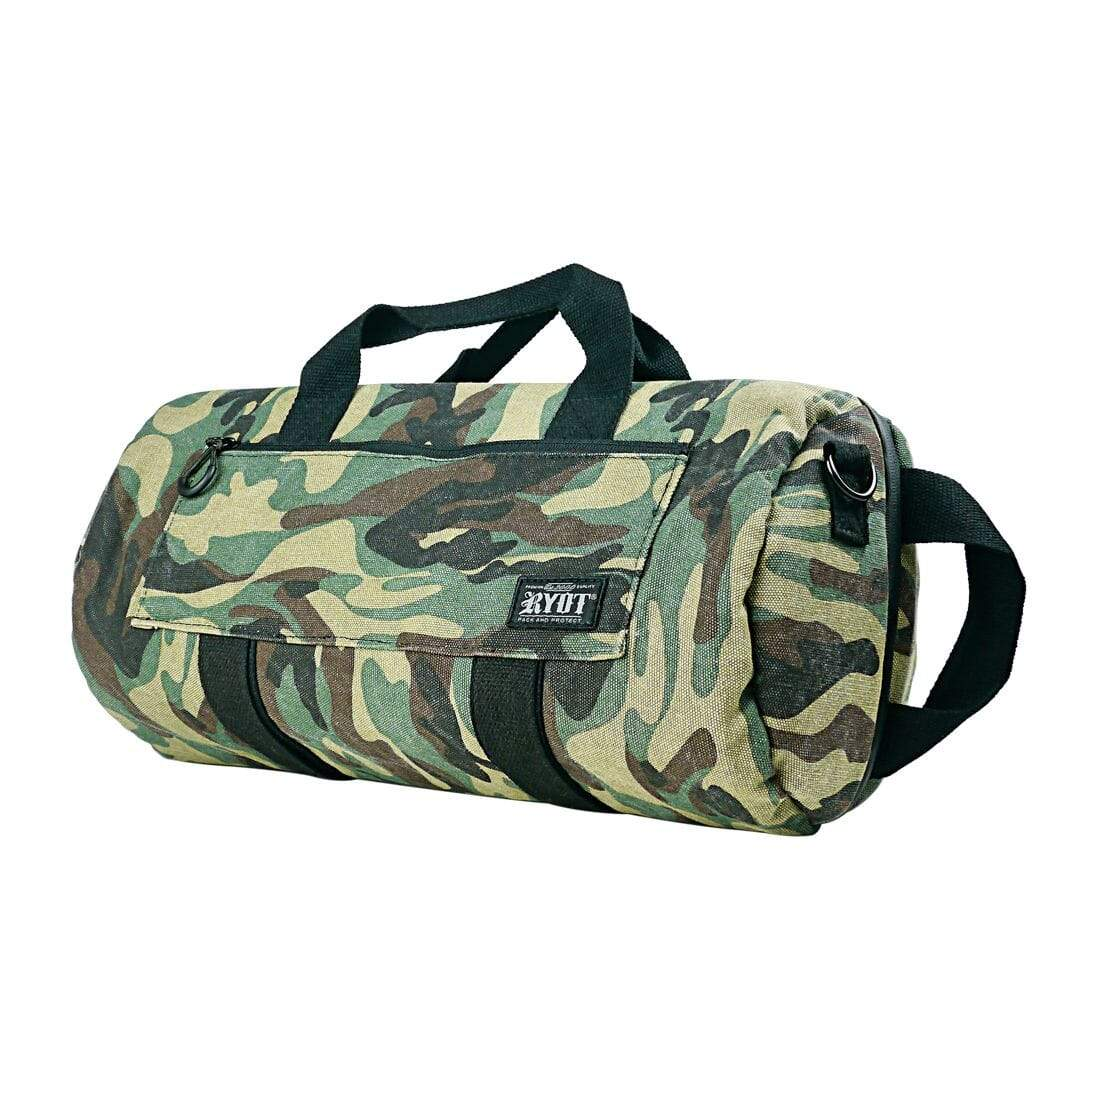 "Pro-Duffle Carbon Series with SmellSafe and Lockable Technology in Camo (16"") - Everything But The Plant"